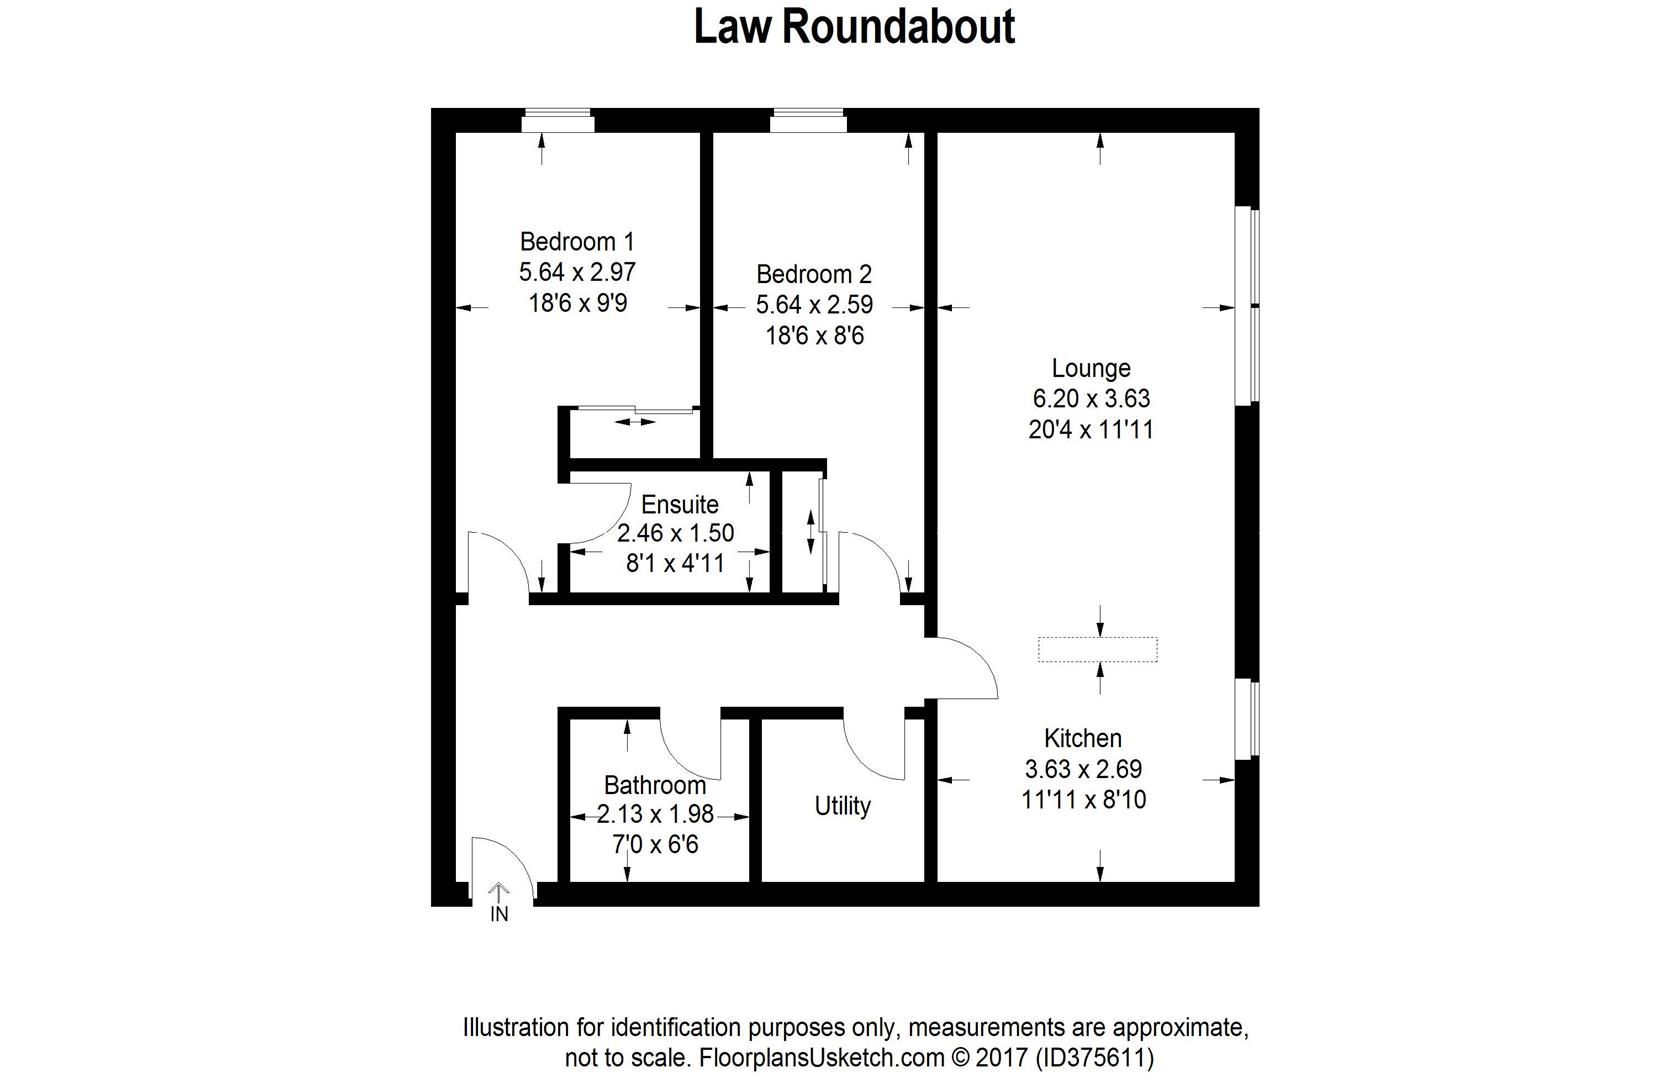 2 bed flat for sale in law roundabout east kilbride for Beds east kilbride